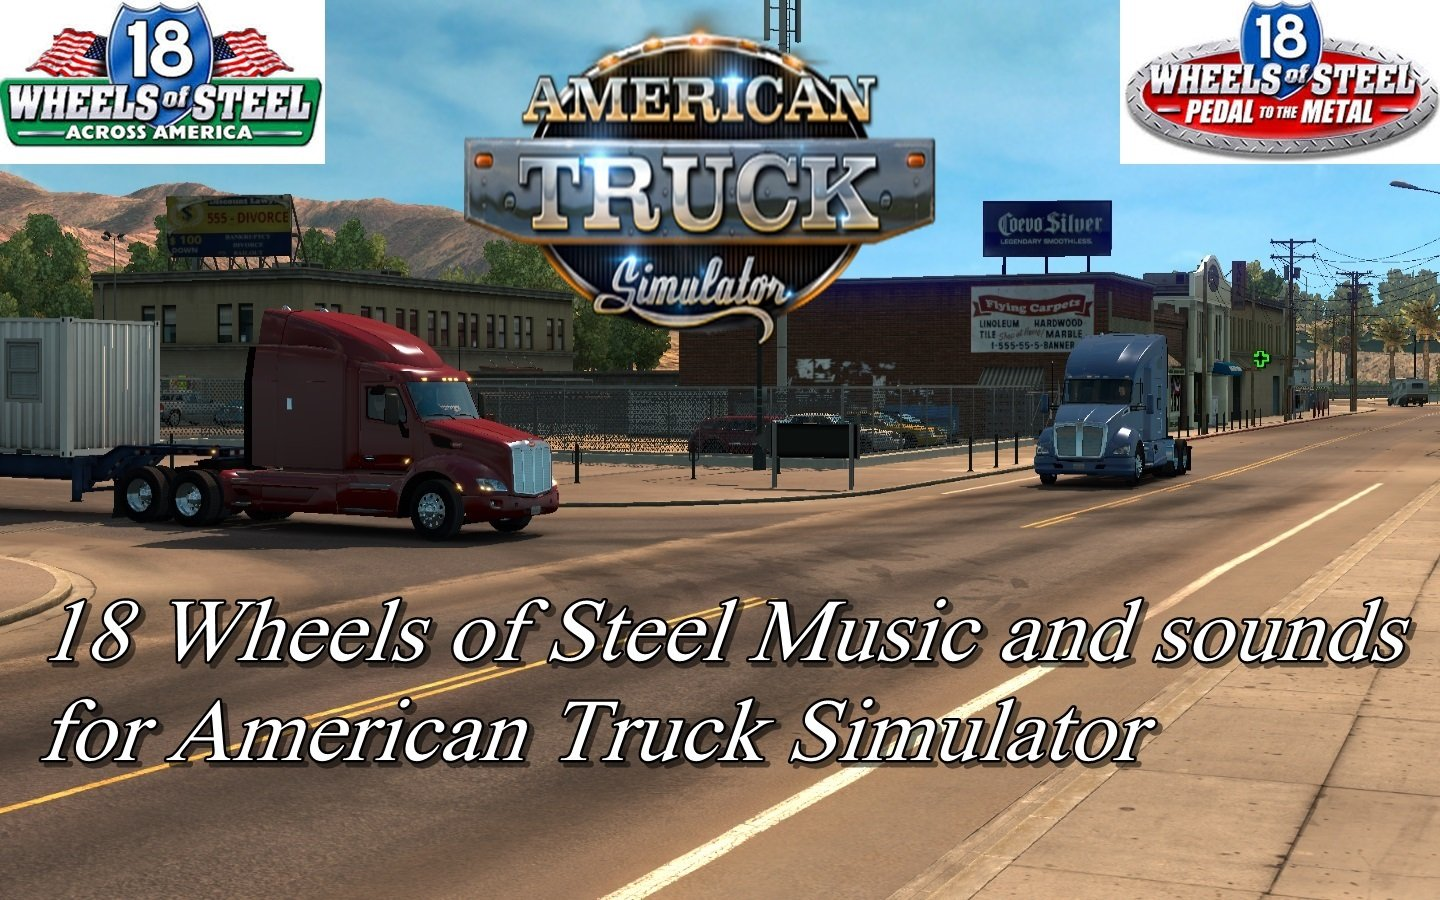 18 Wheels of Steel Music and sounds for ATS